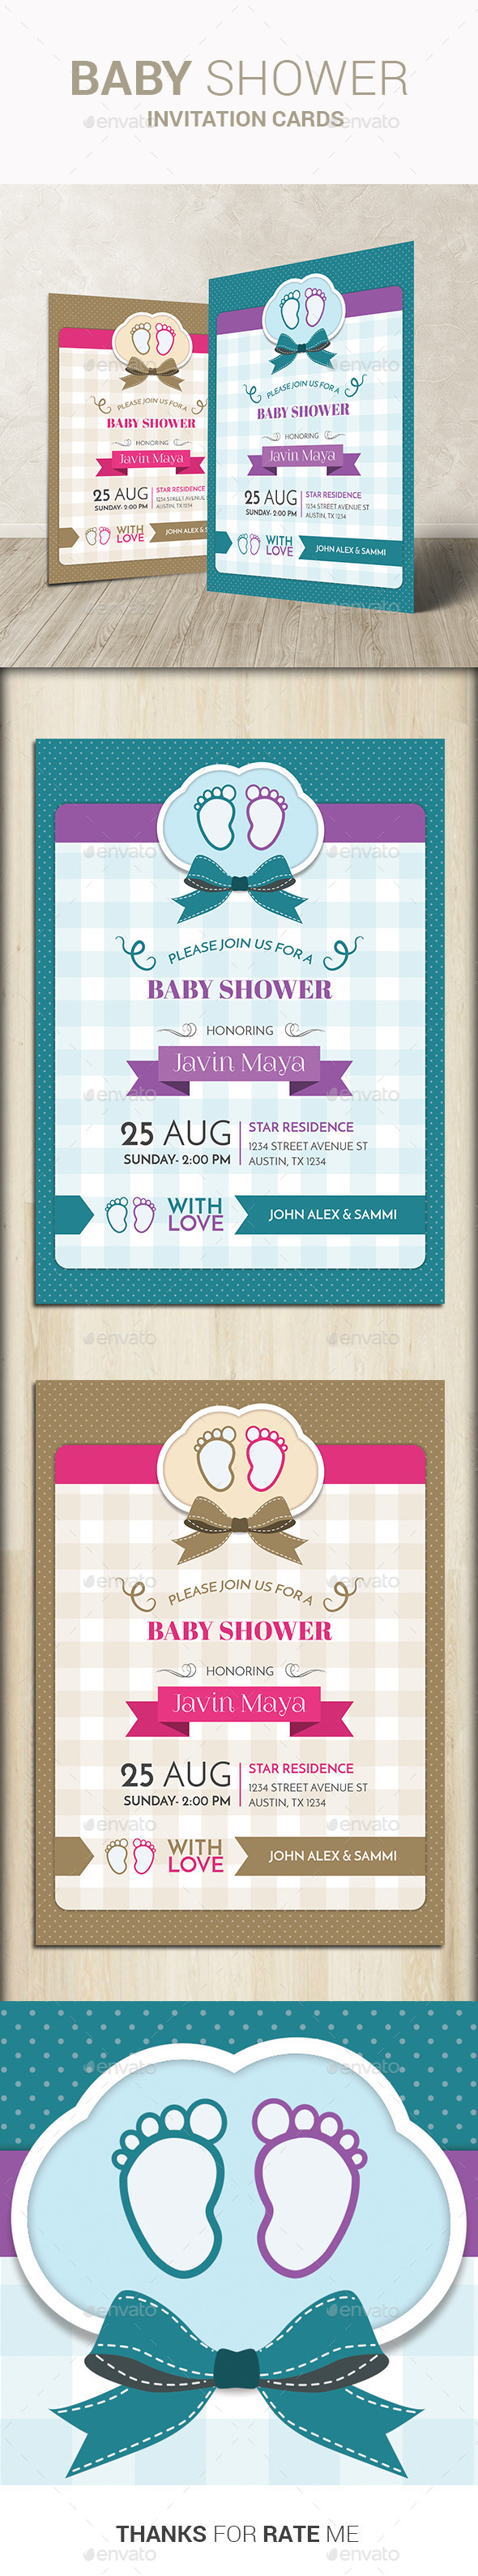 GraphicRiver Baby Shower Invitation Cards 11047862